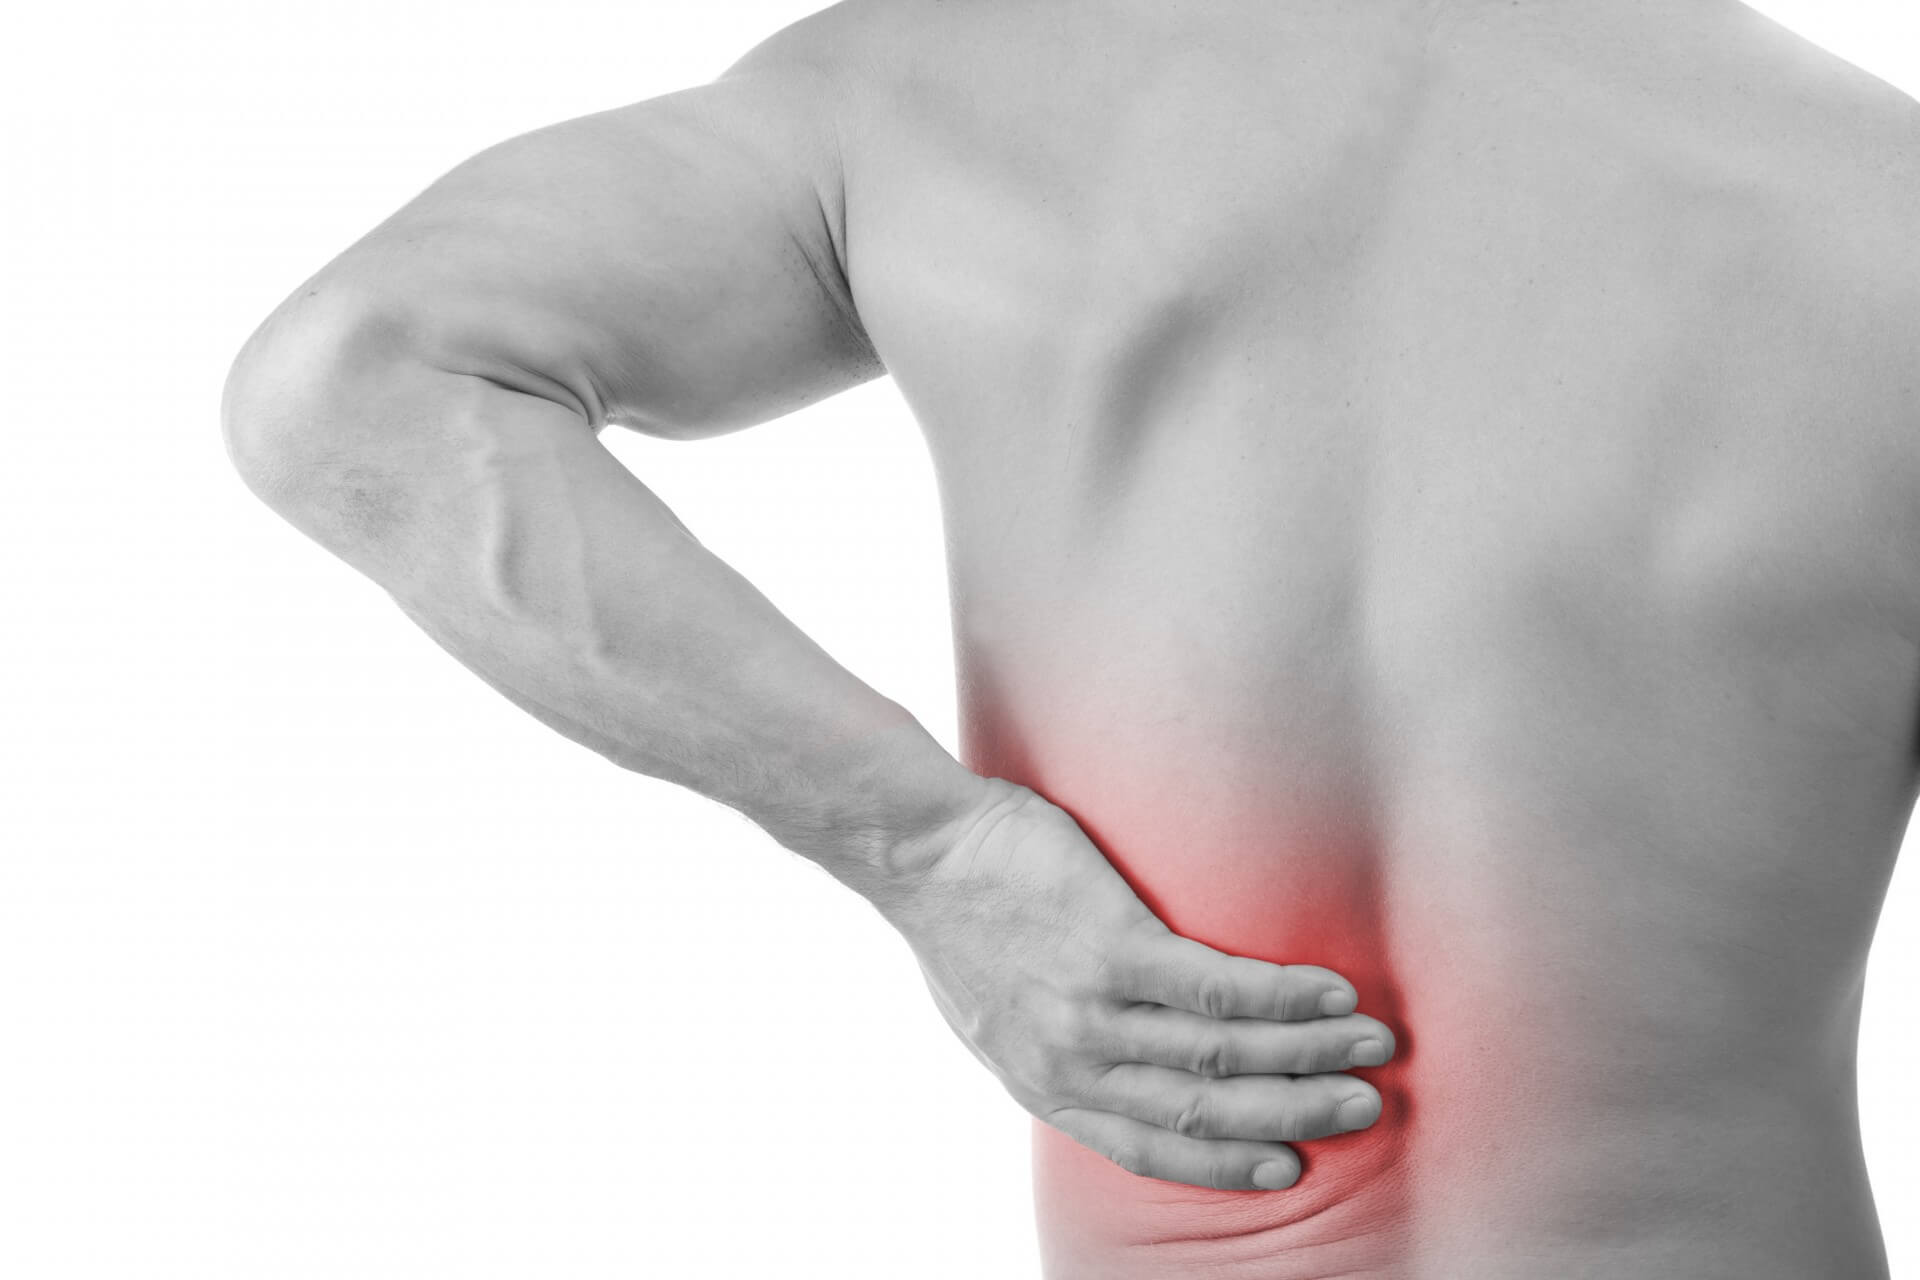 Non-Surgical-Back-Pain-Relief.jpg